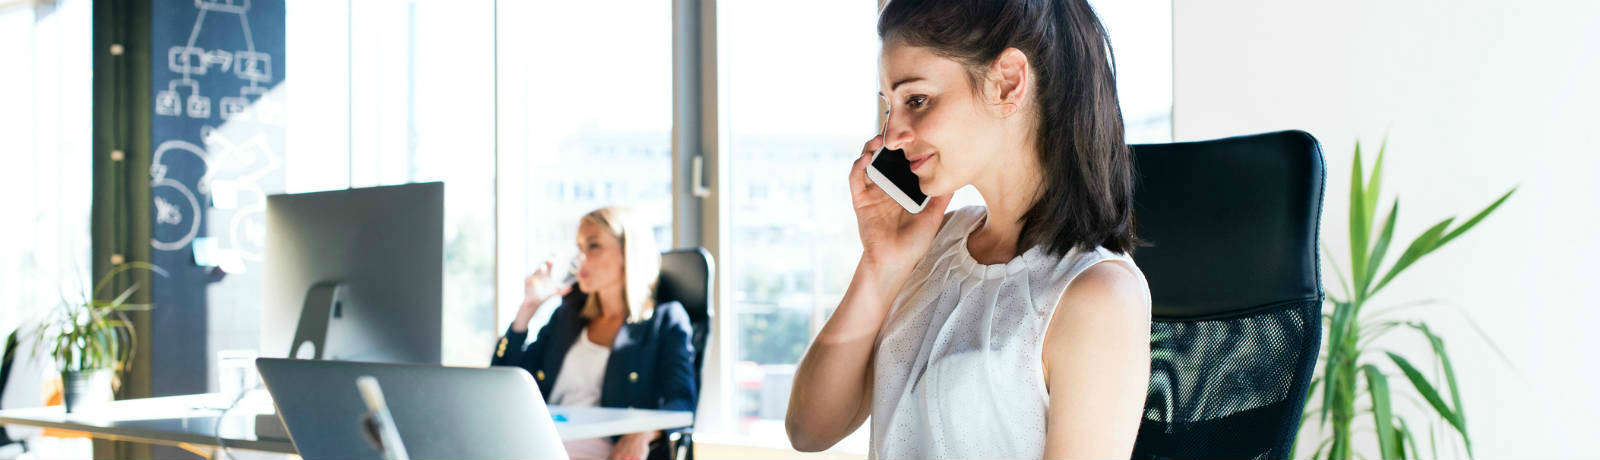 Business Connect - Phone & Hosted VoIP System   TELUS Business